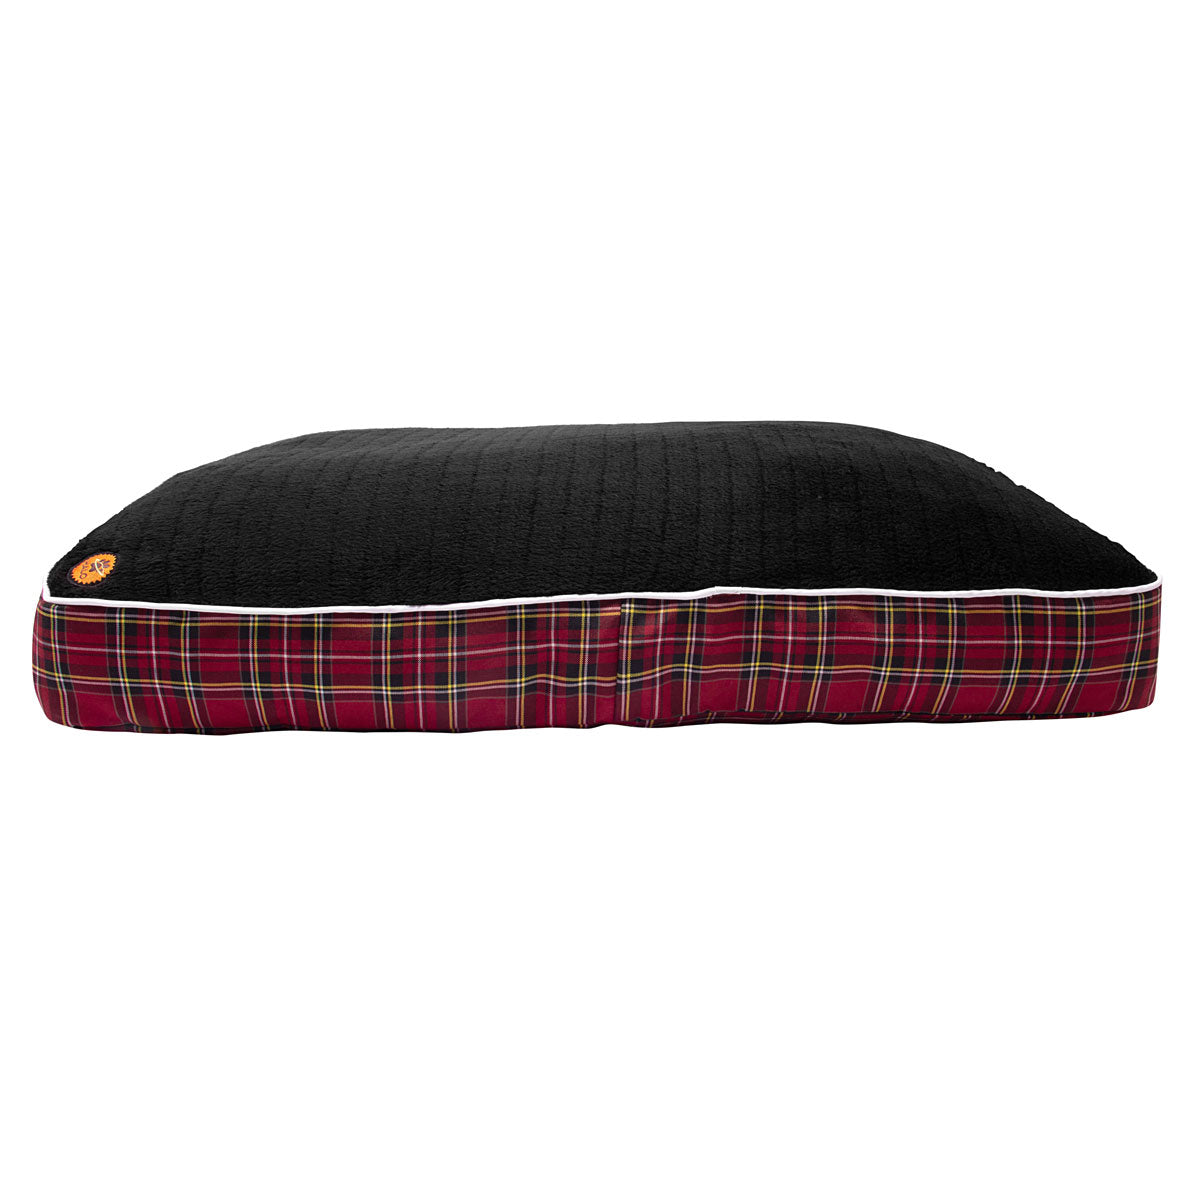 Halo EC Red Plaid Rectangular Dog Bed_2217